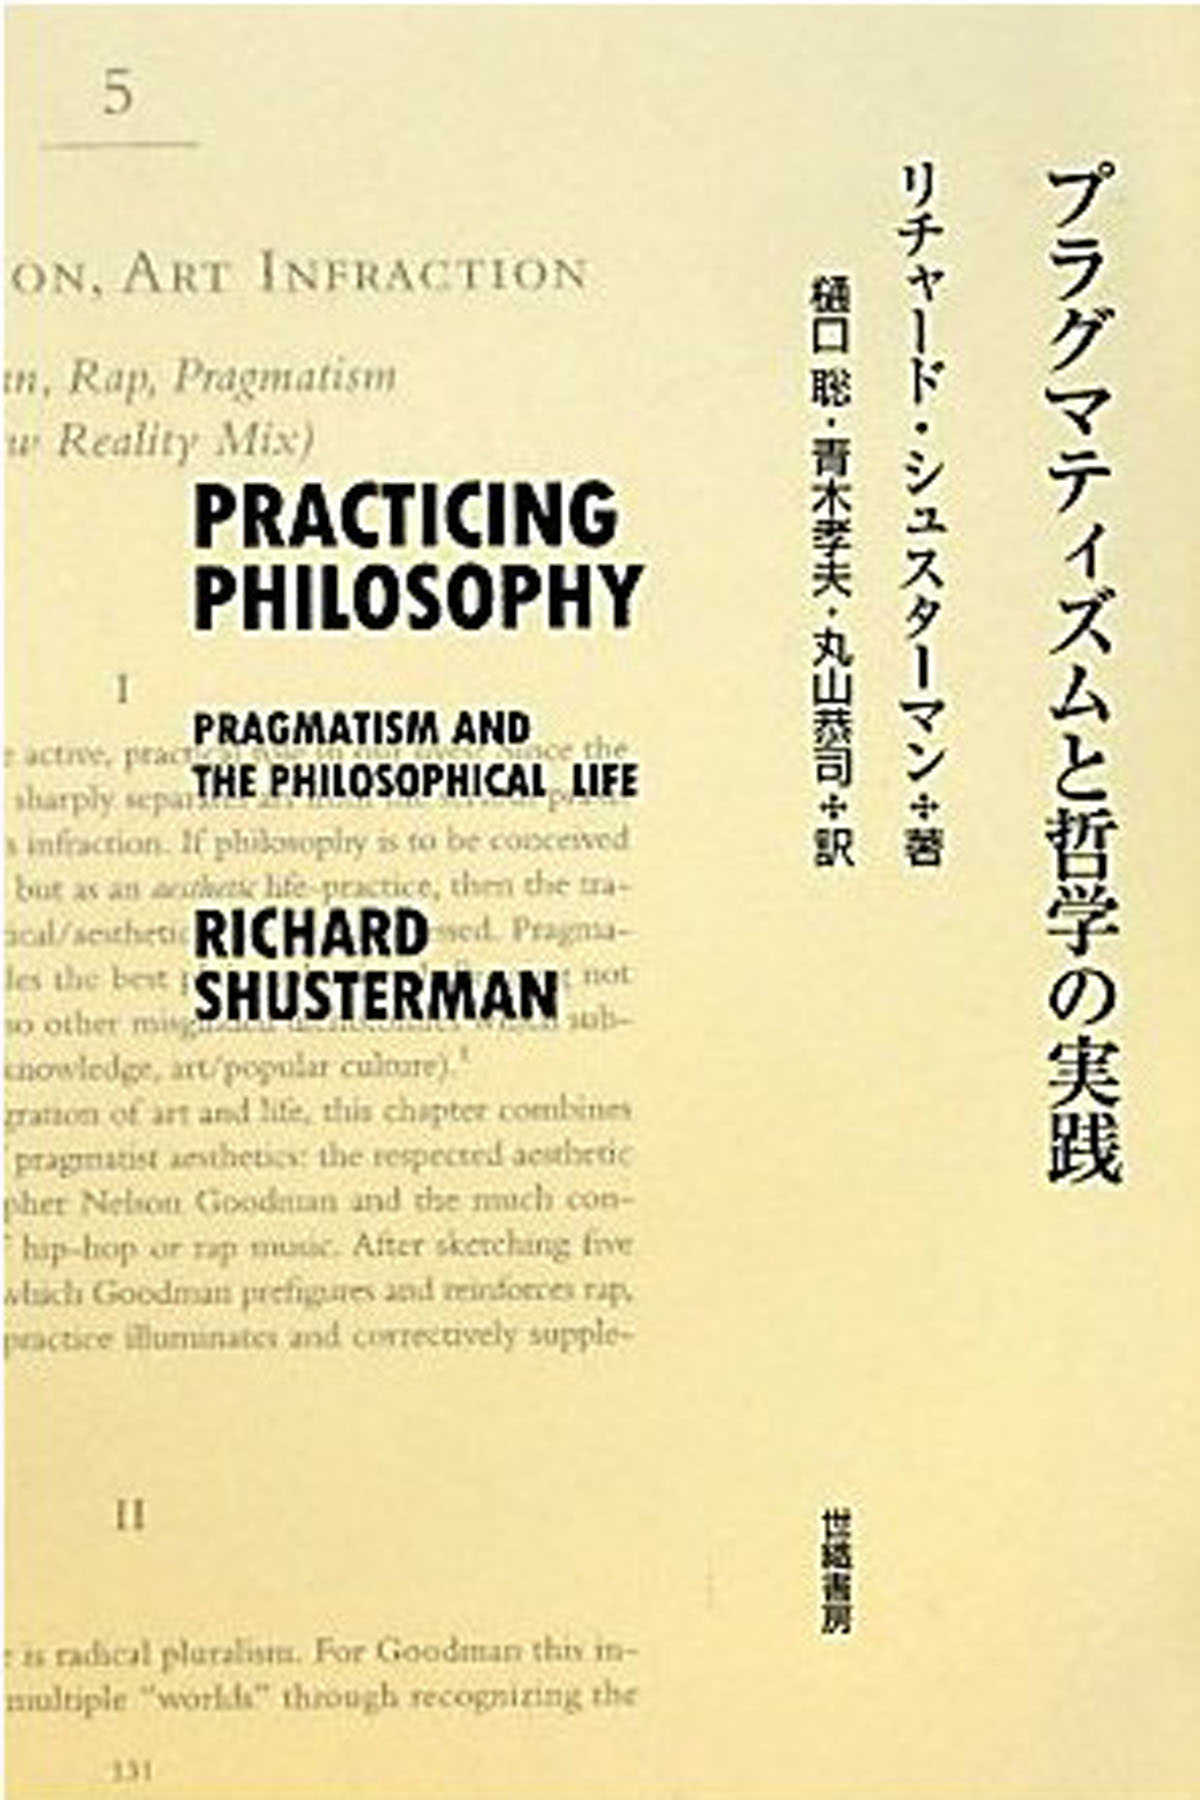 Japanese version of Practicing Philosophy book cover